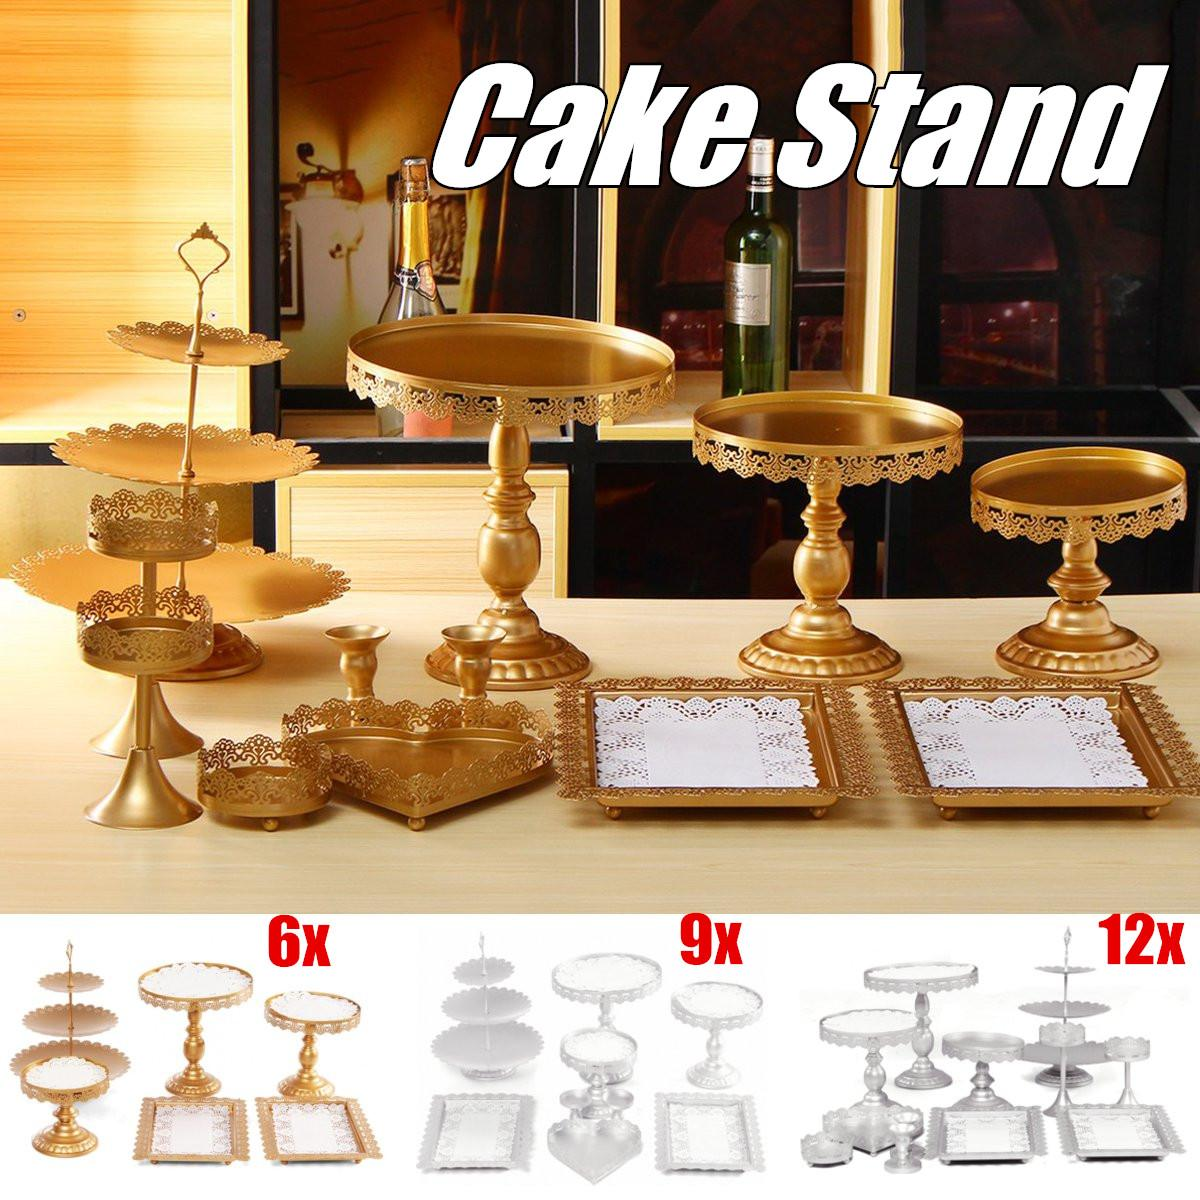 6 9 12Pcs Iron White Gold Cupcake Stand Metal Cake Stand Holder Tray Birthday Wedding Party